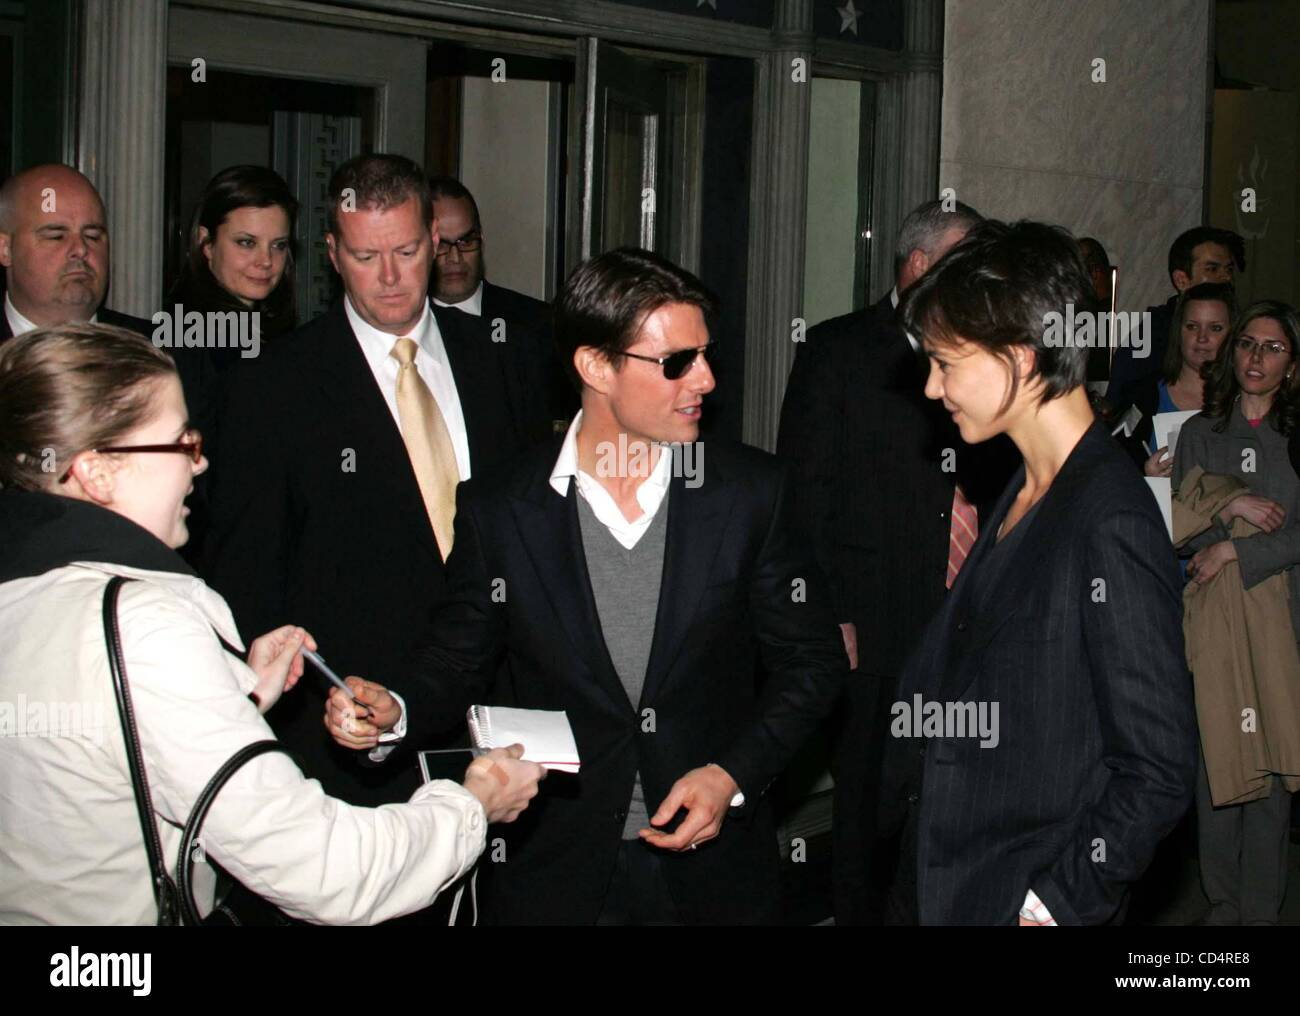 Oct. 20, 2008 - New York, New York, U.S. - CELEBRITY LADEN PRIVATE PARTY AT HERMES.MADISON AVENUE    10-20-2008. - Stock Image